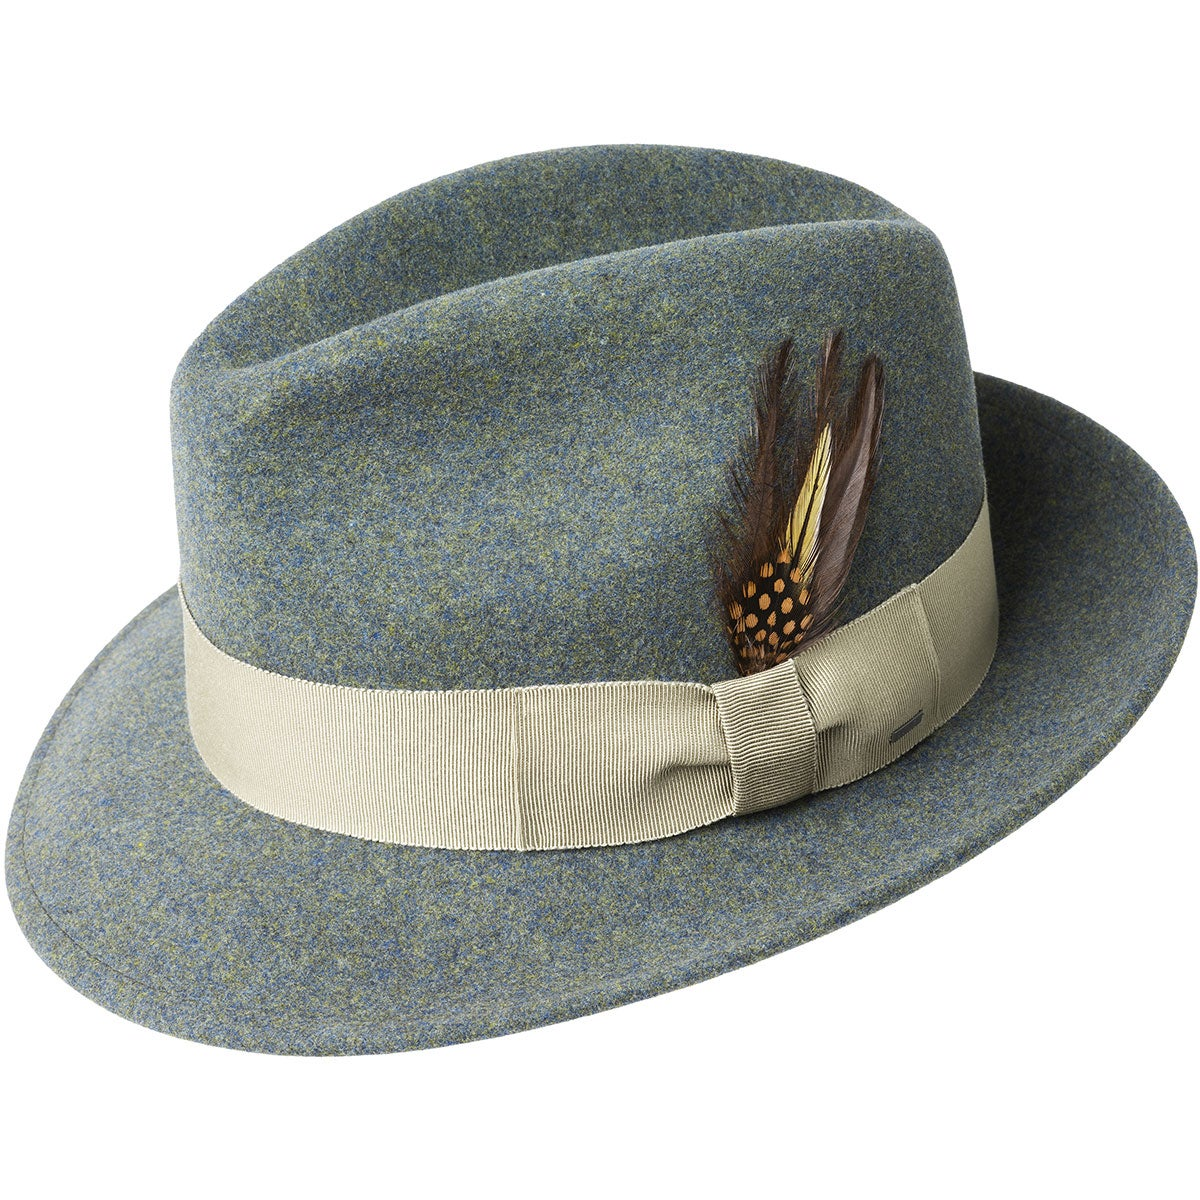 1920s Mens Hats & Caps | Gatsby, Peaky Blinders, Gangster Blixen Limited Edition Fedora $98.00 AT vintagedancer.com